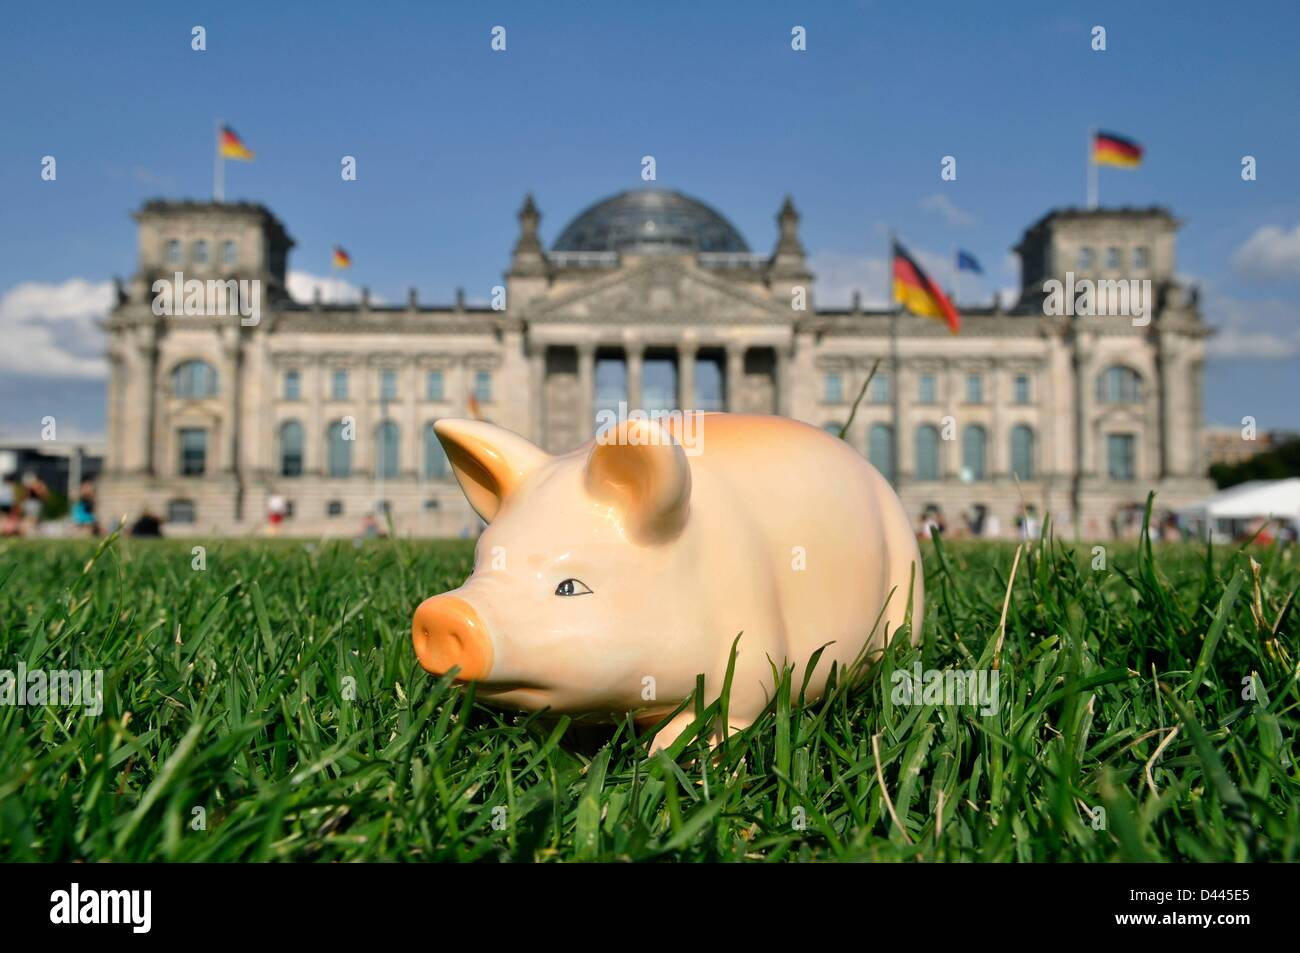 Illustration - A piggy bank is pictured standing on the lawn in front of the German Reichstag in Berlin, German, Stock Photo